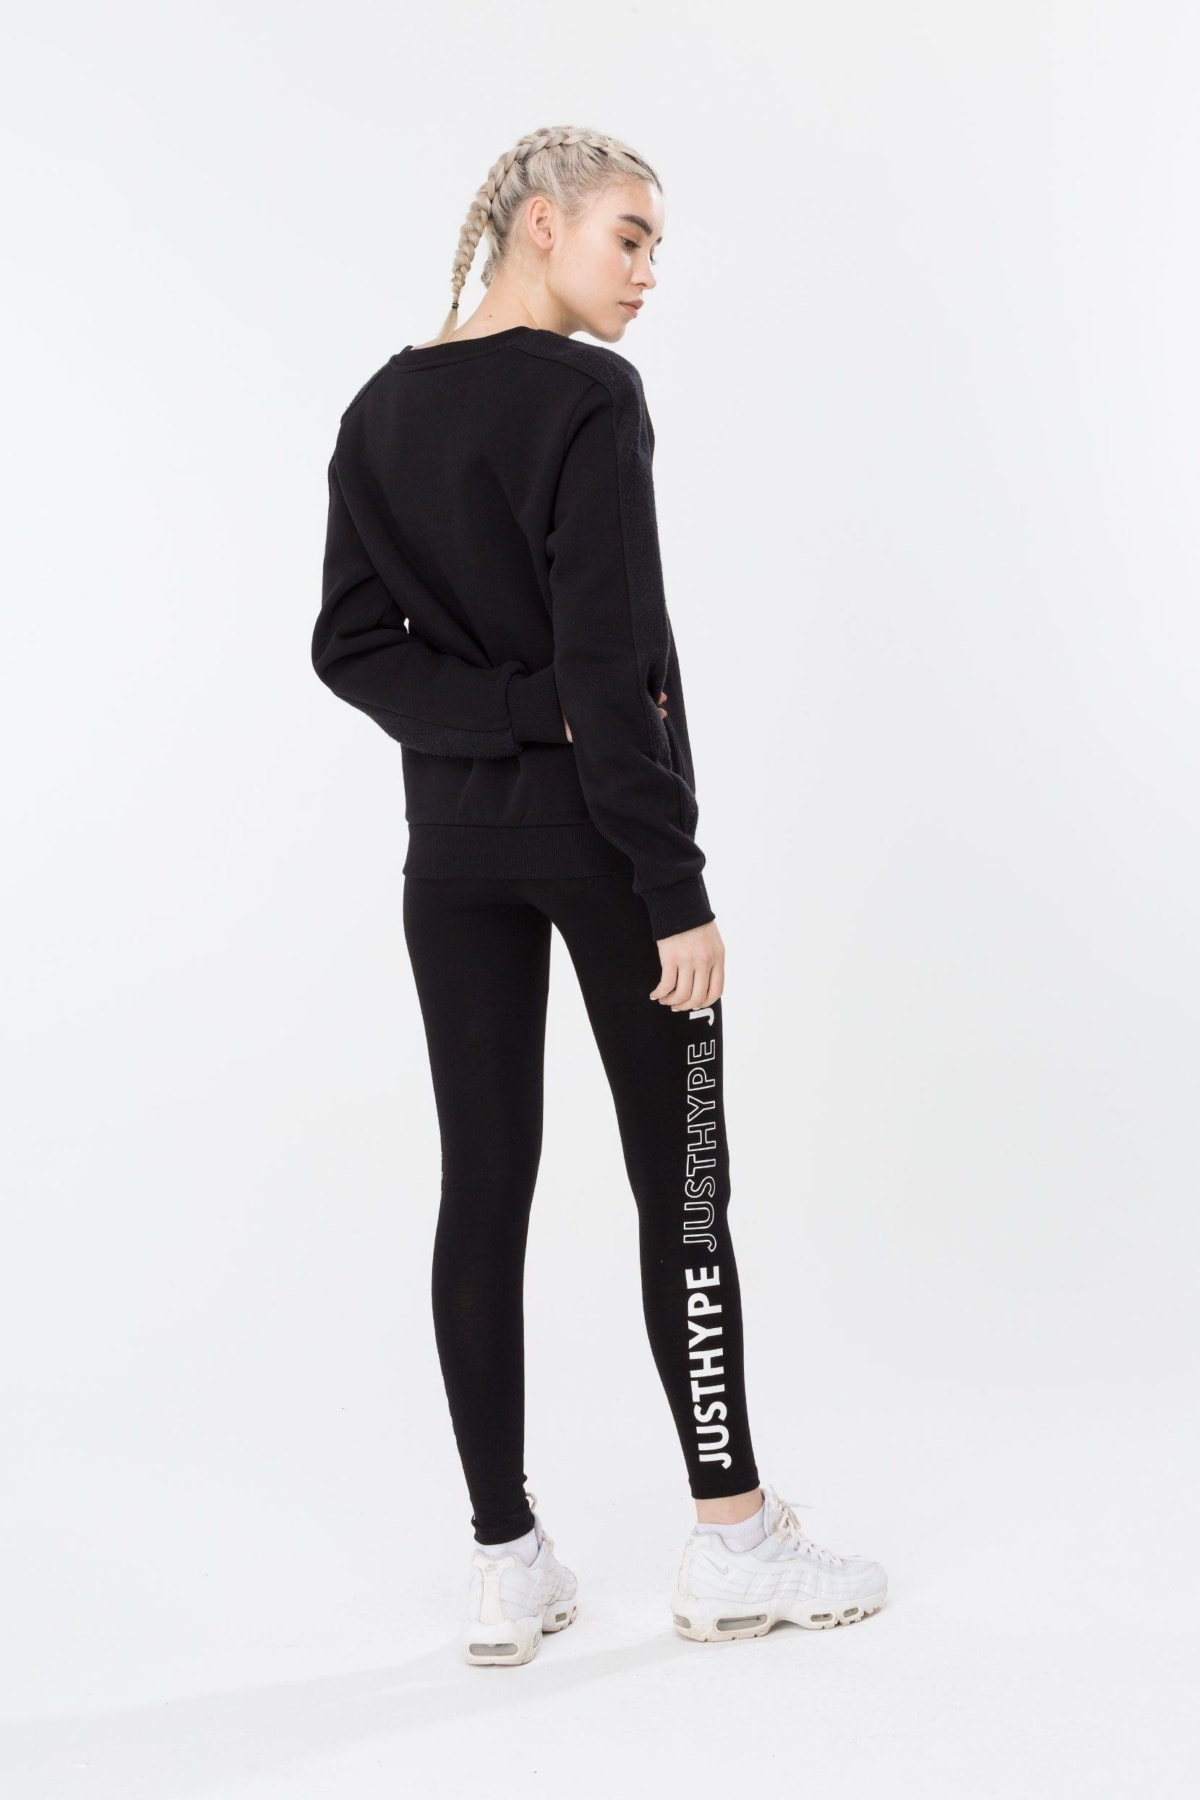 HYPE Black/White Justhype Women's Crewneck